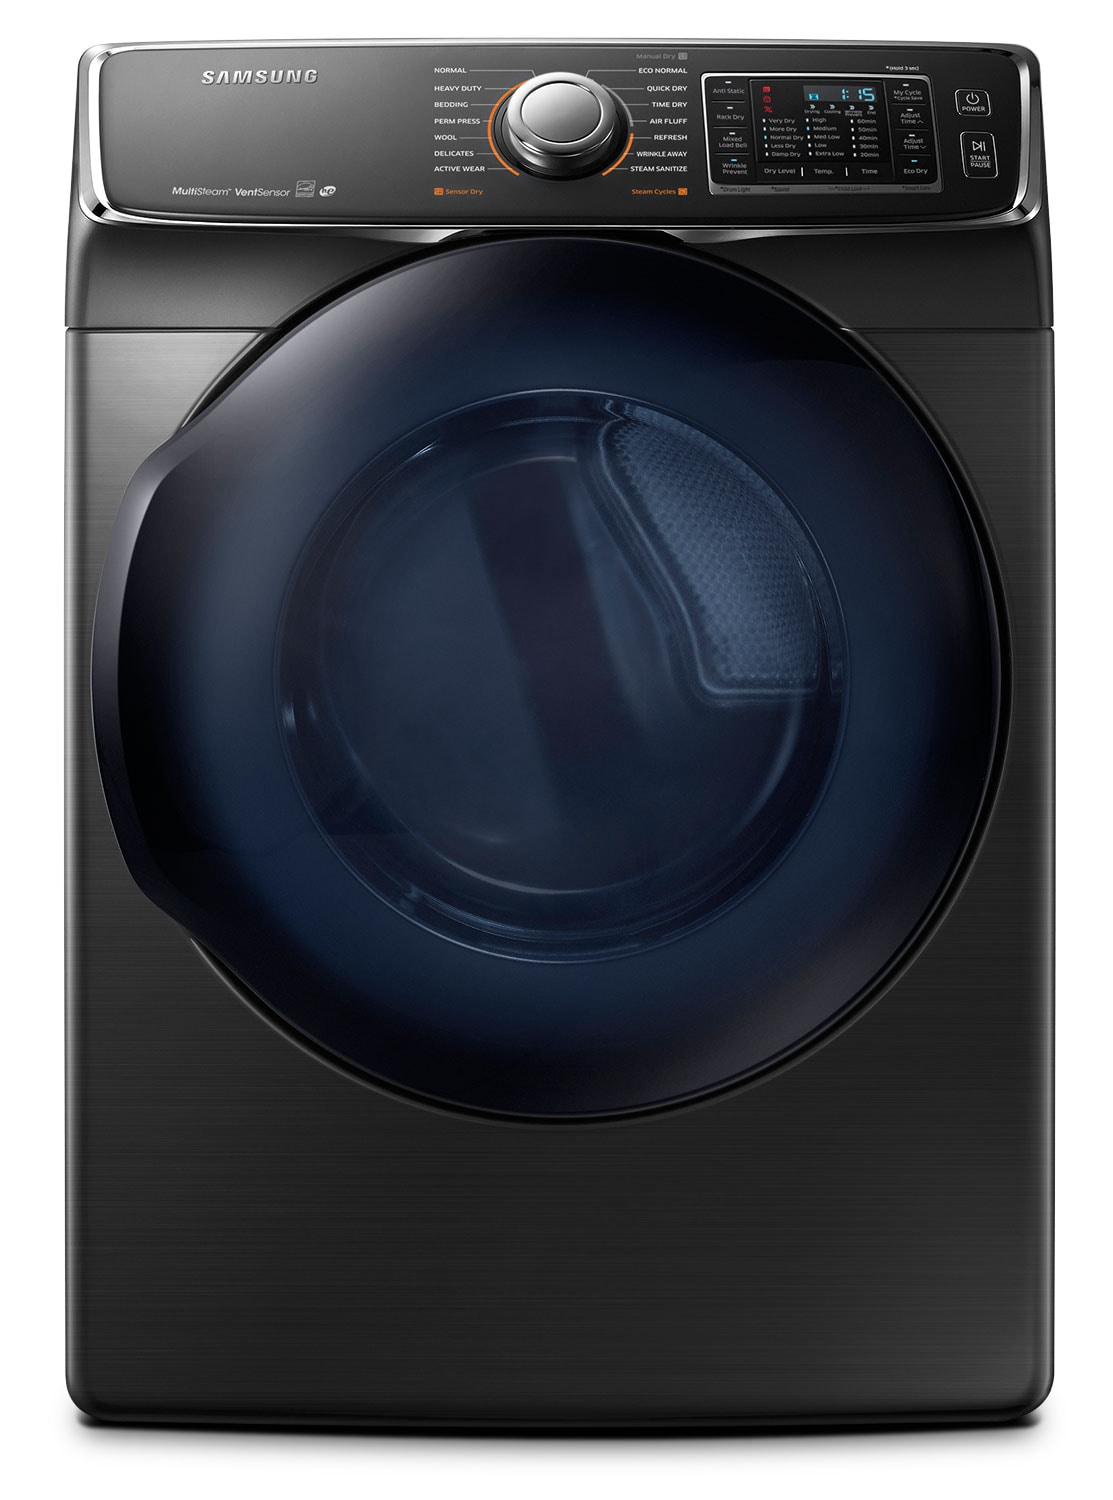 Washers and Dryers - Samsung Black Stainless Steel Electric Dryer (7.5 Cu. Ft.) - DV50K7500EV/AC